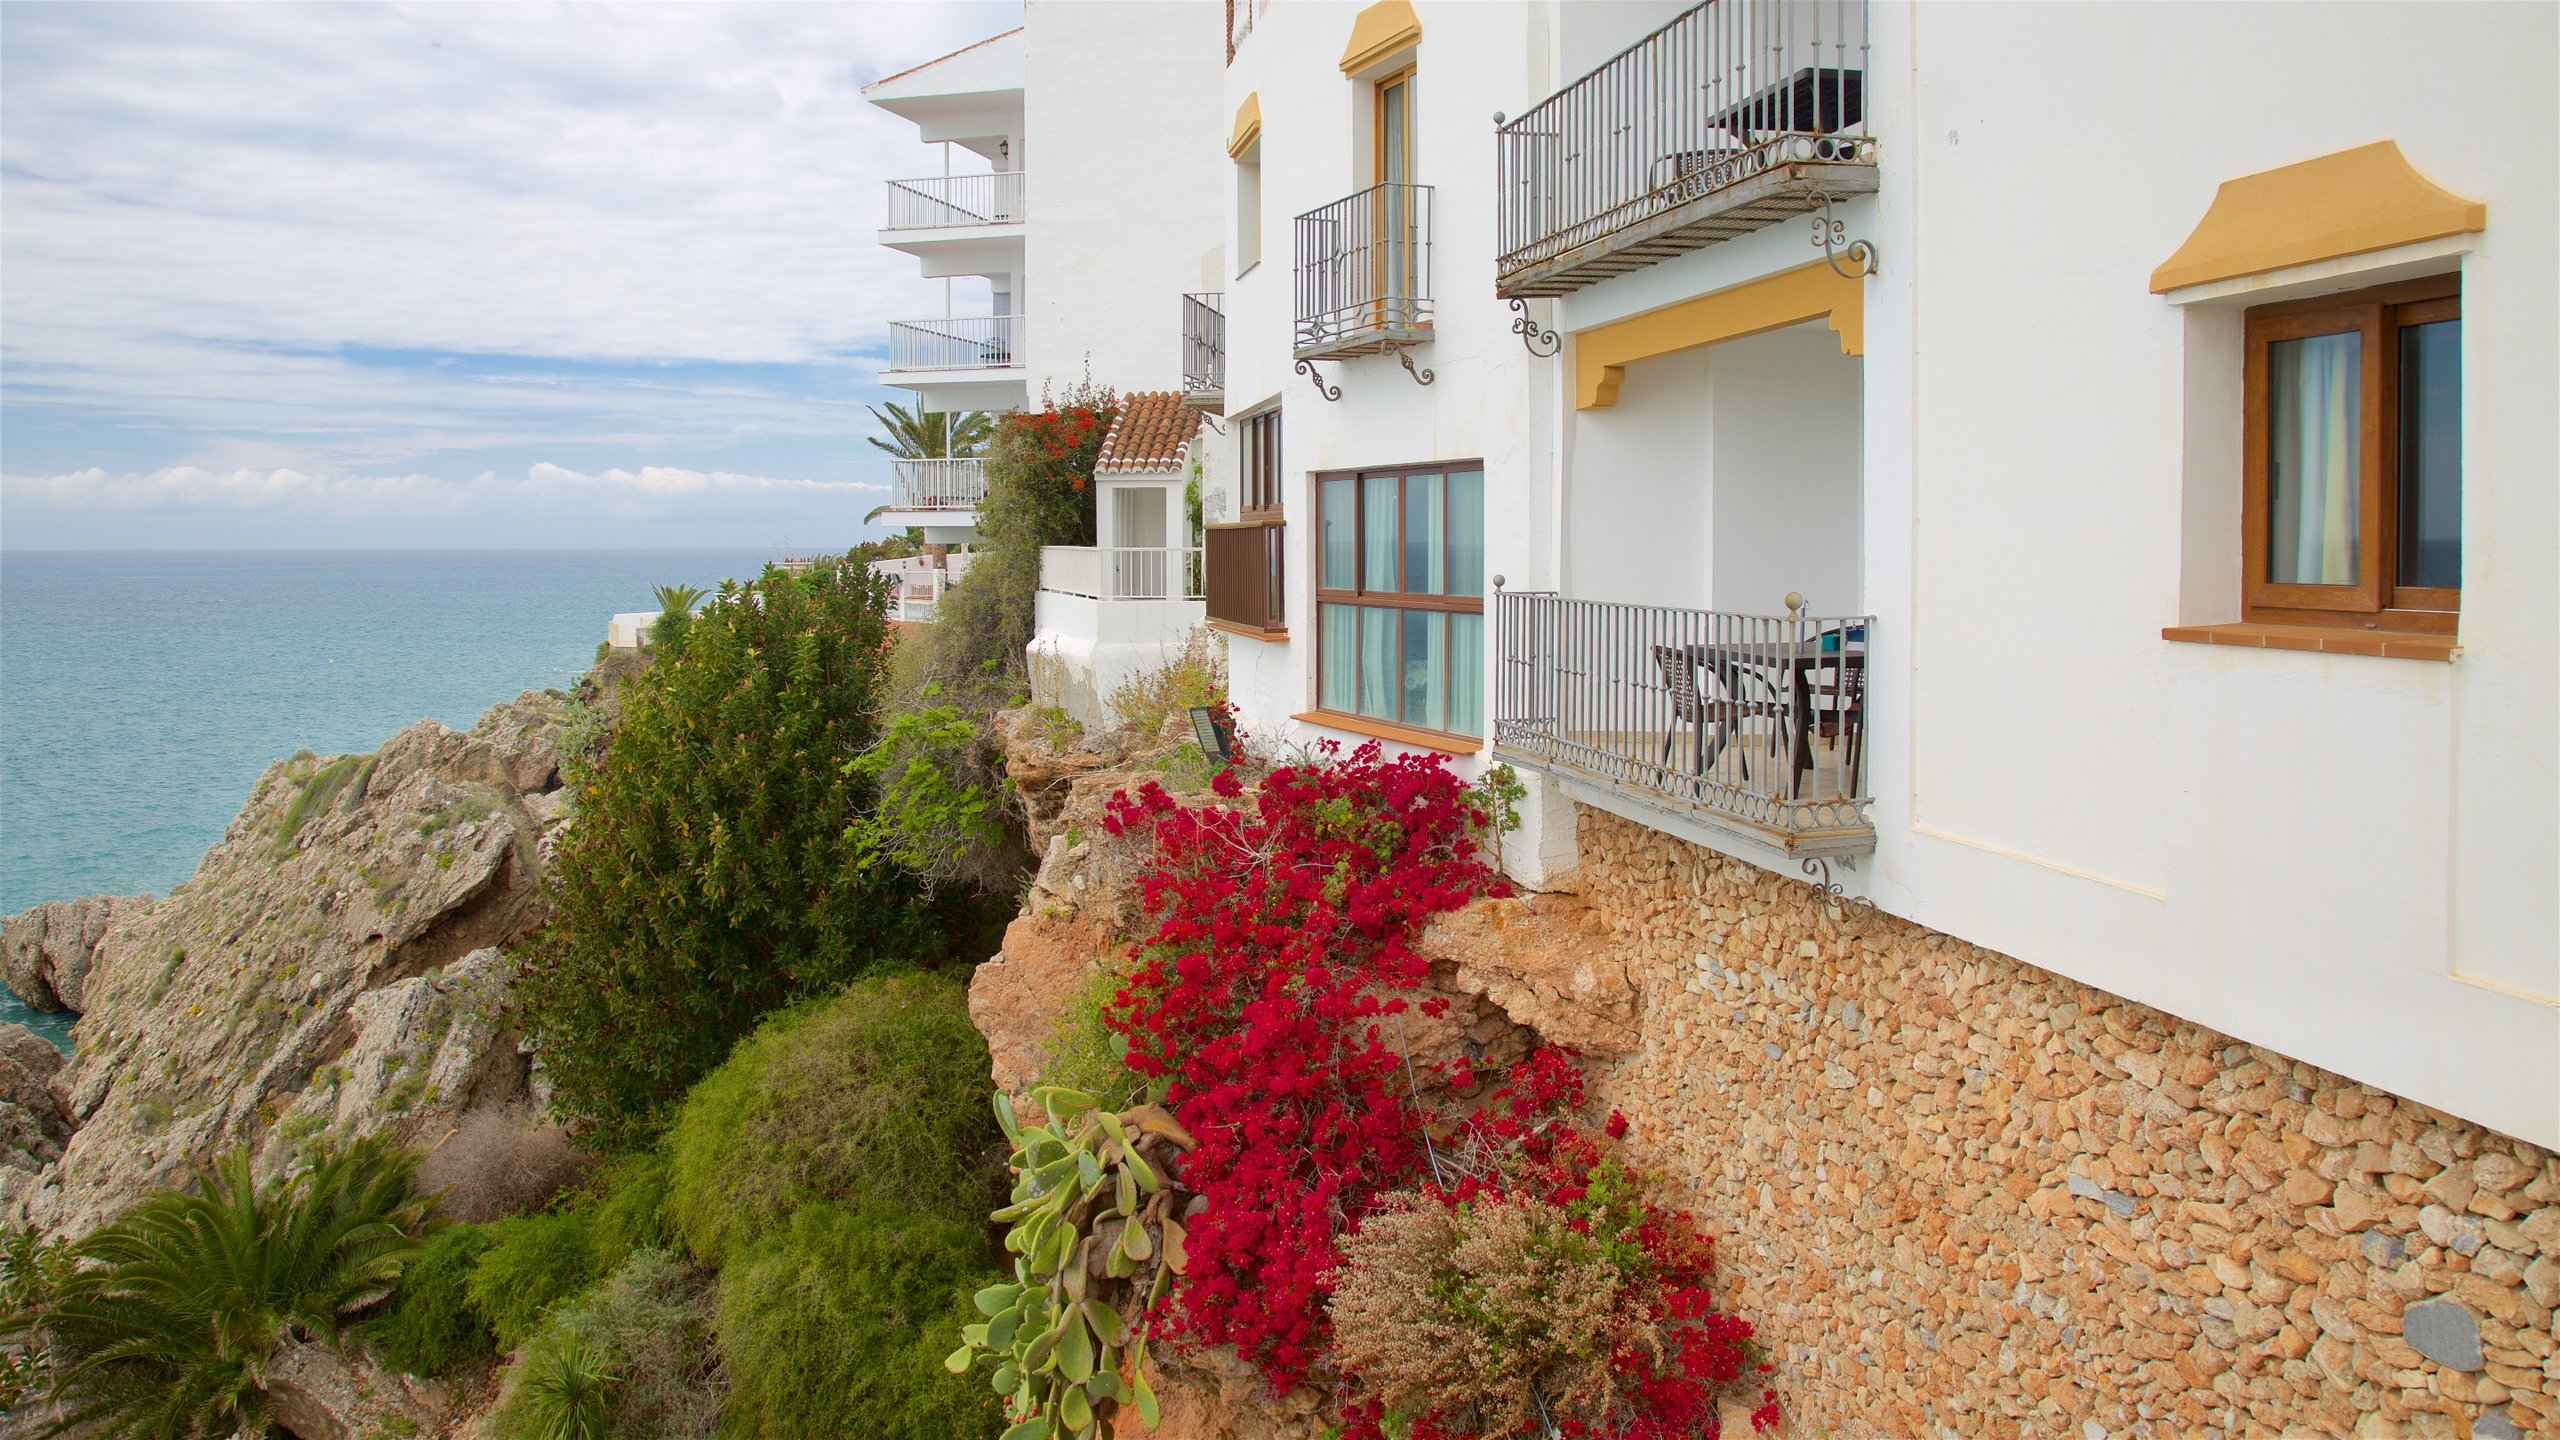 Toboso Apar Turis Nerja Accommodation Top Nerja Hotels 2019 Wotif